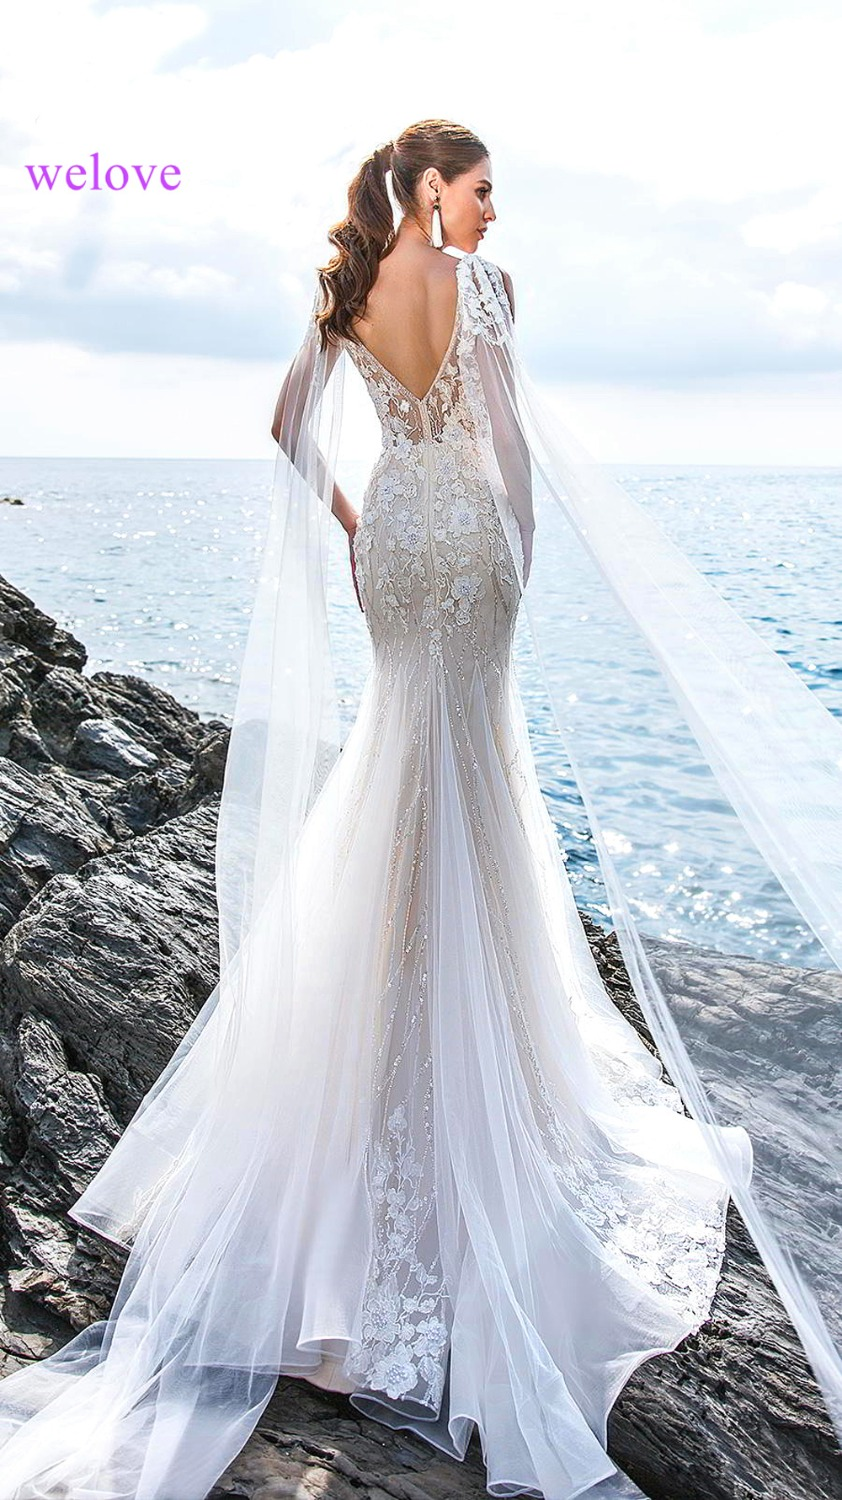 Robe de mariee New arrival 2019 Summer Beach Wedding Dress with Straps White Open Back Mermaid Wedding Dresses Vestige De Noiva